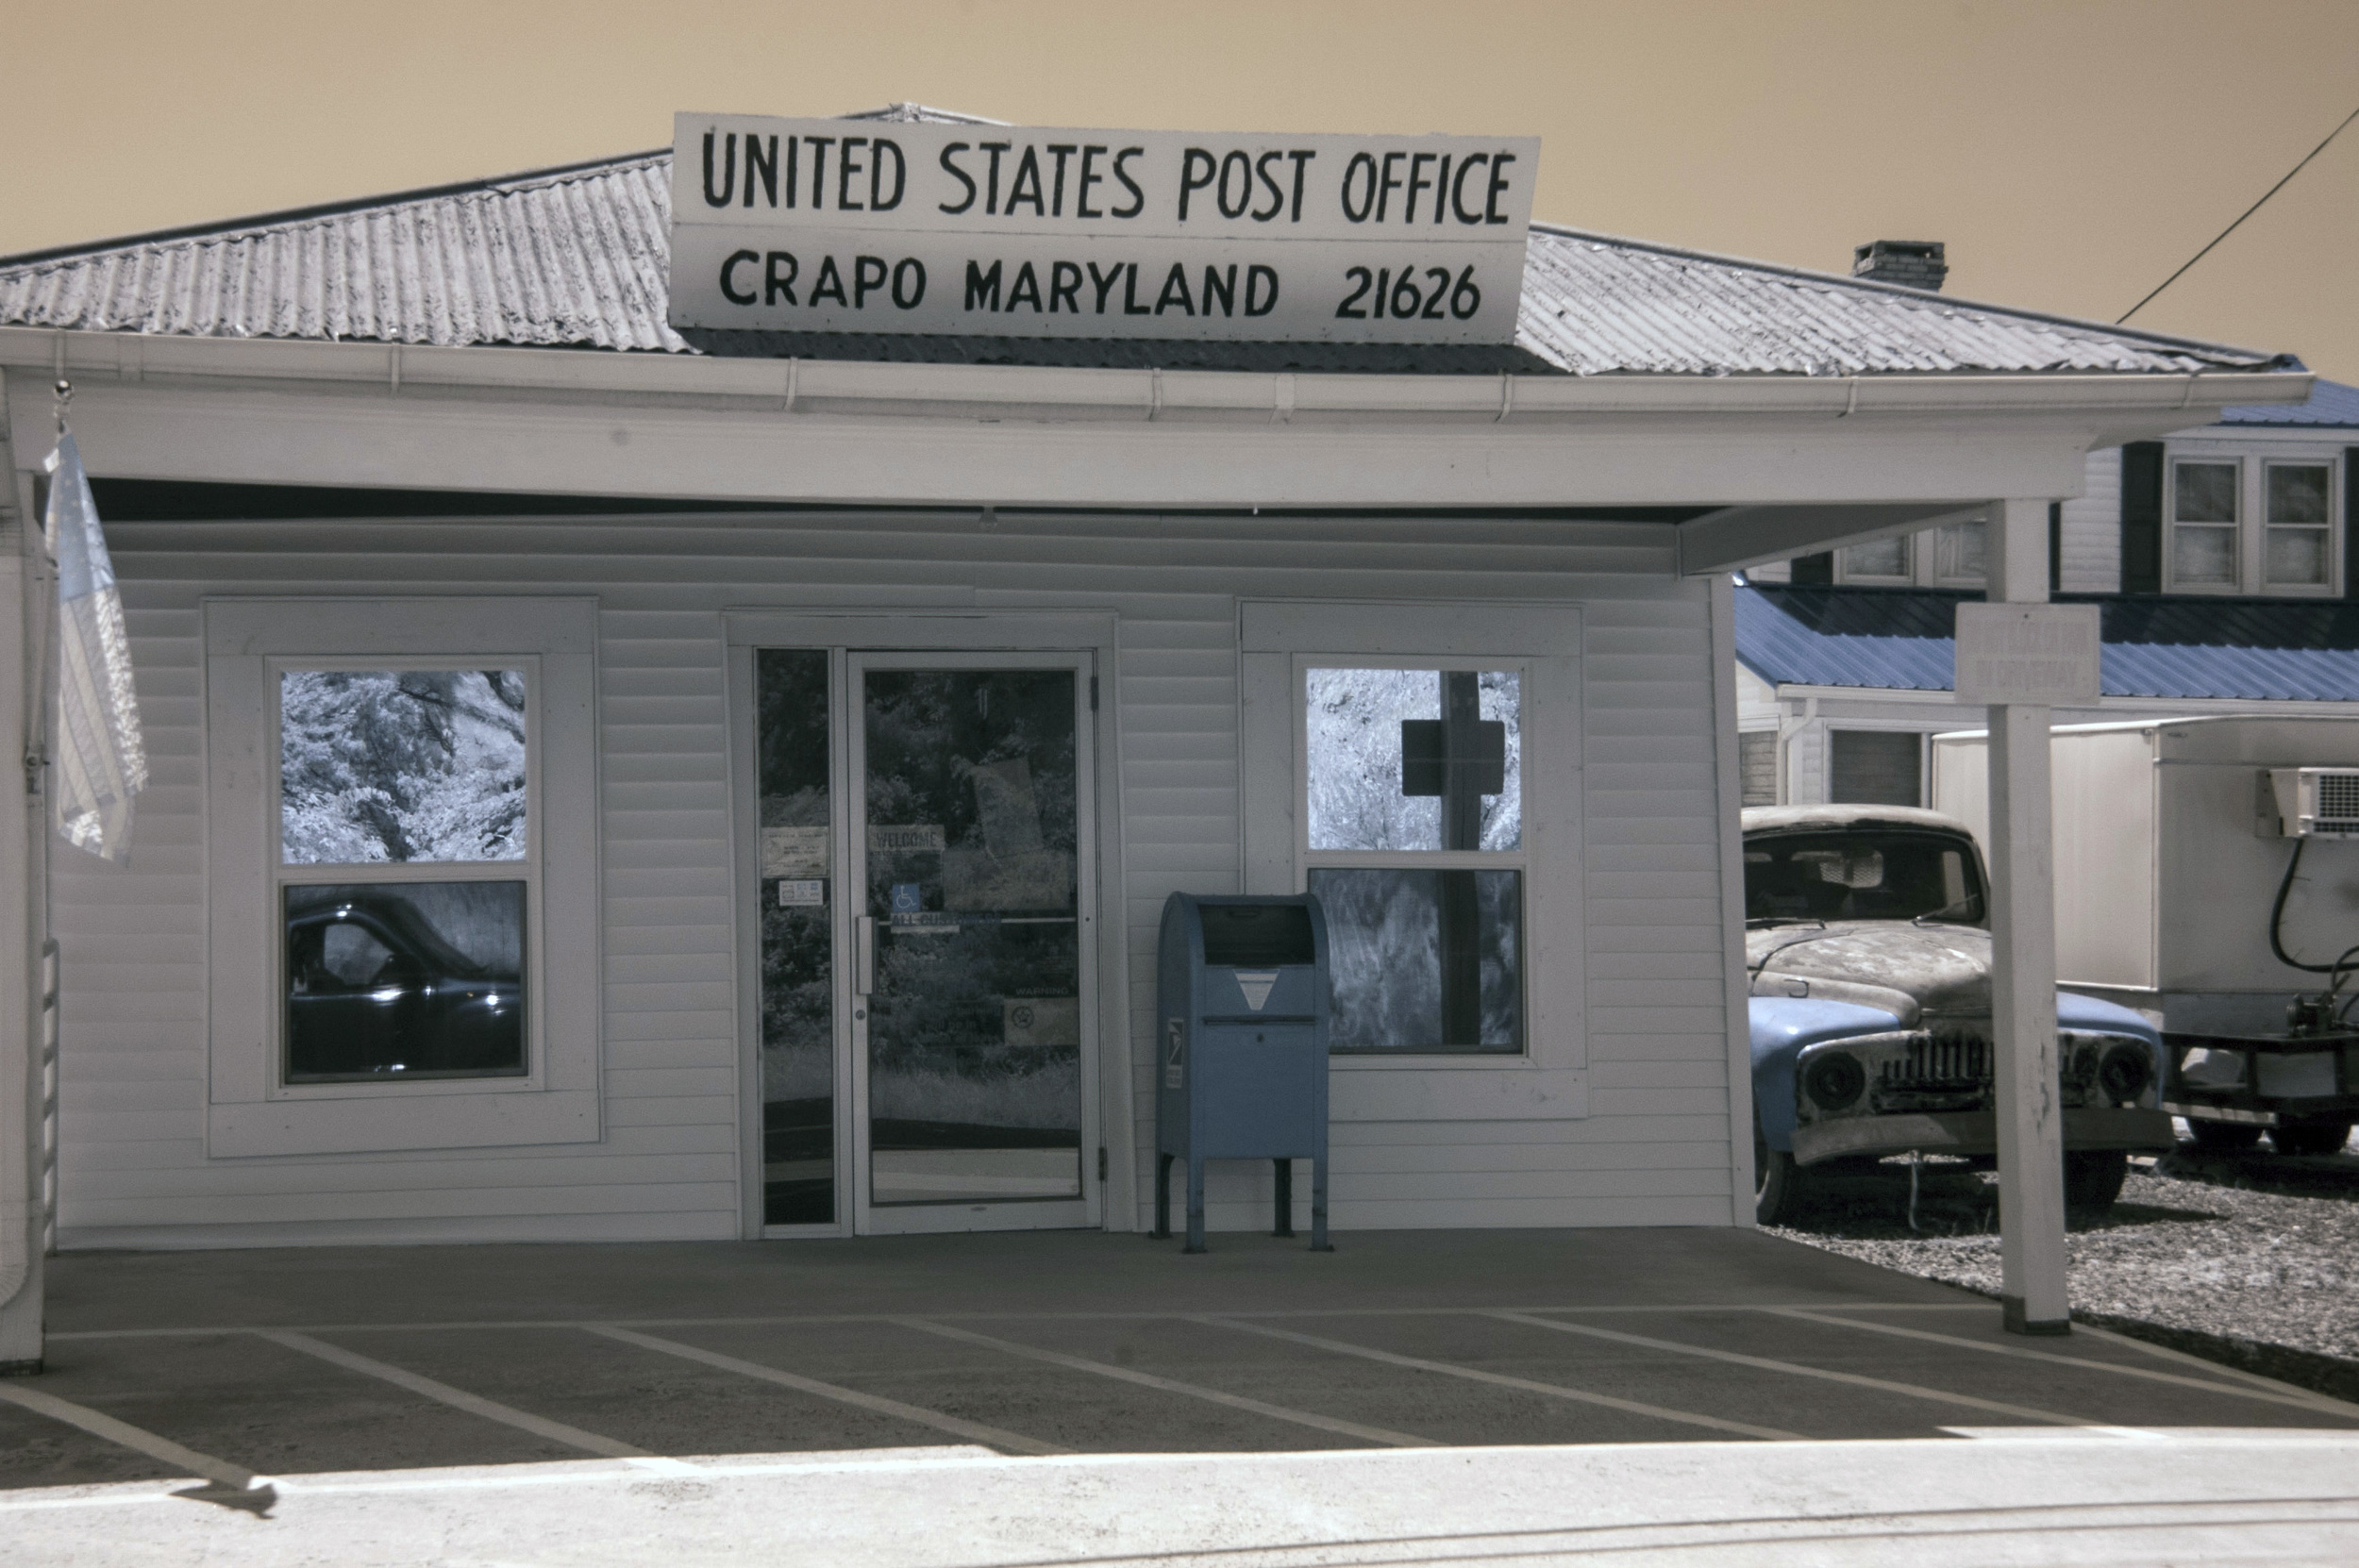 Infrared of Crapo, Md. post office